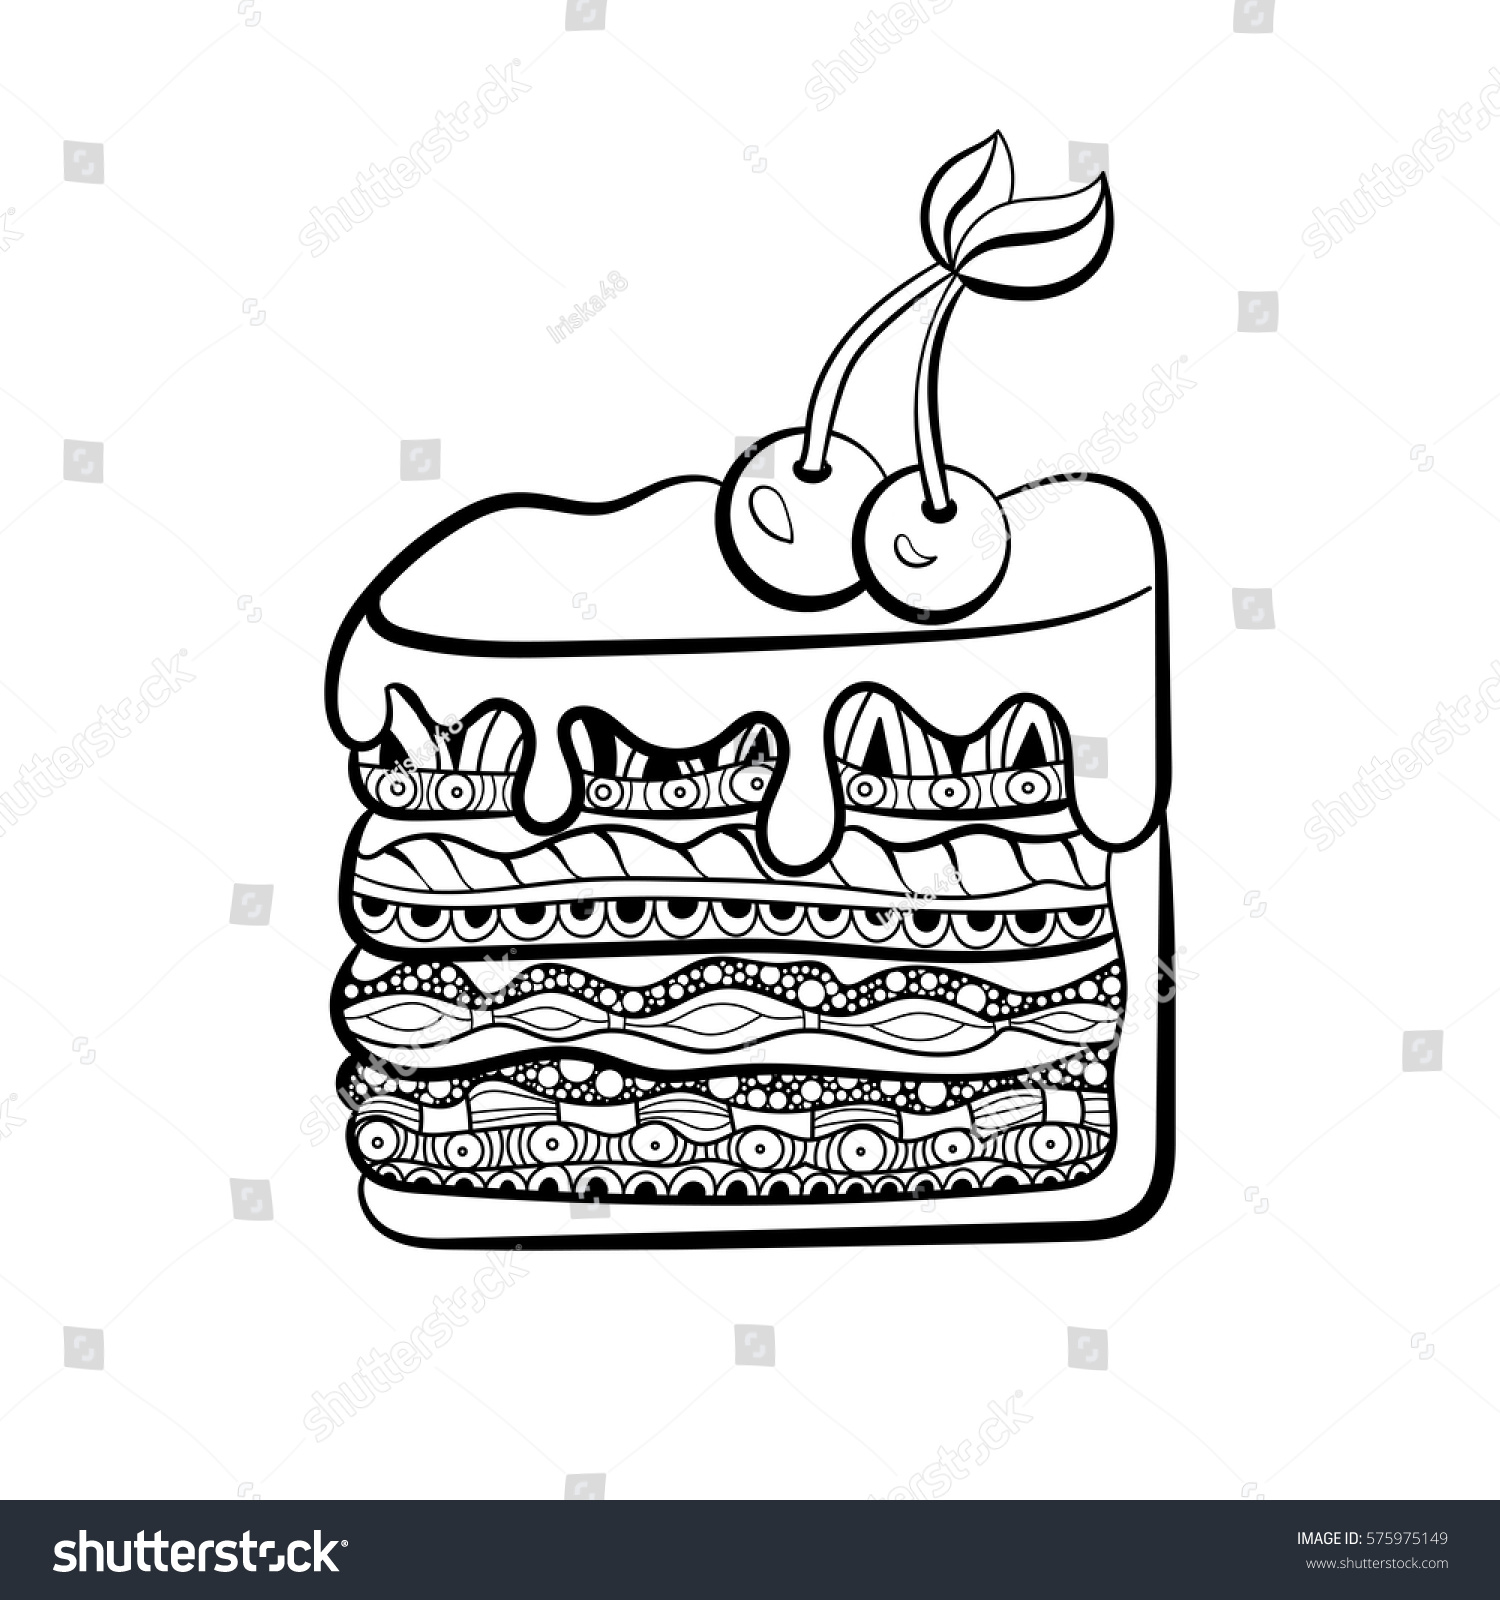 Piece Cake Coloring Book Adults Zentangle Stock Vector 575975149 ...